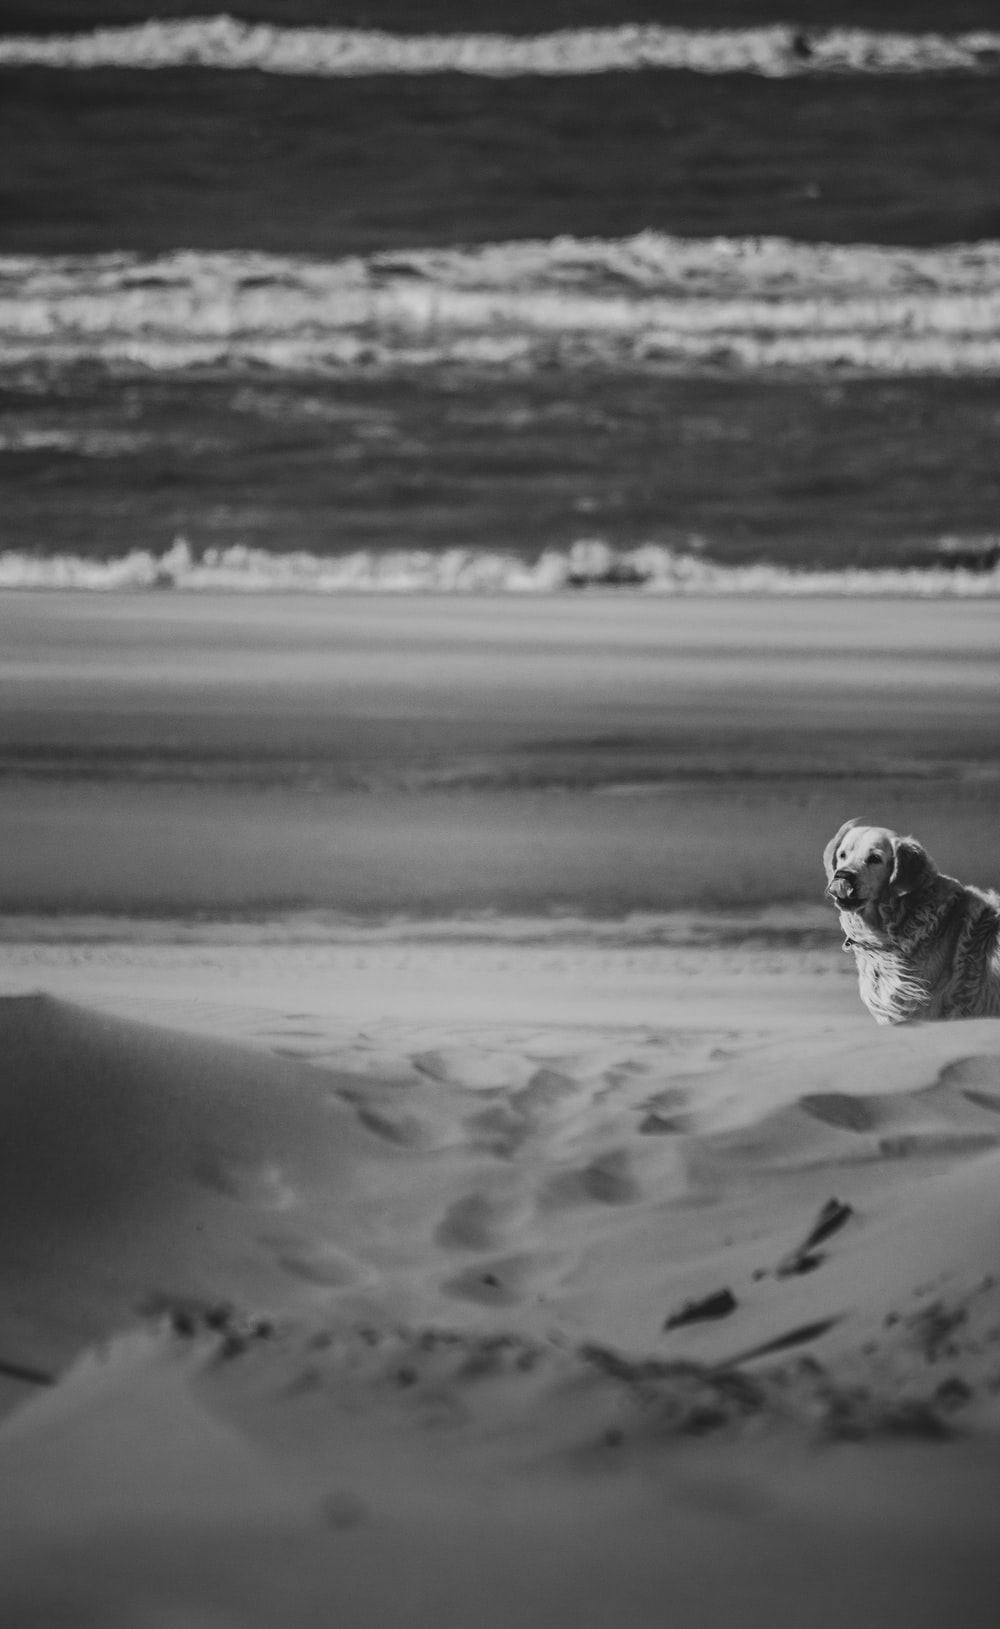 grayscale photo of dog on sand